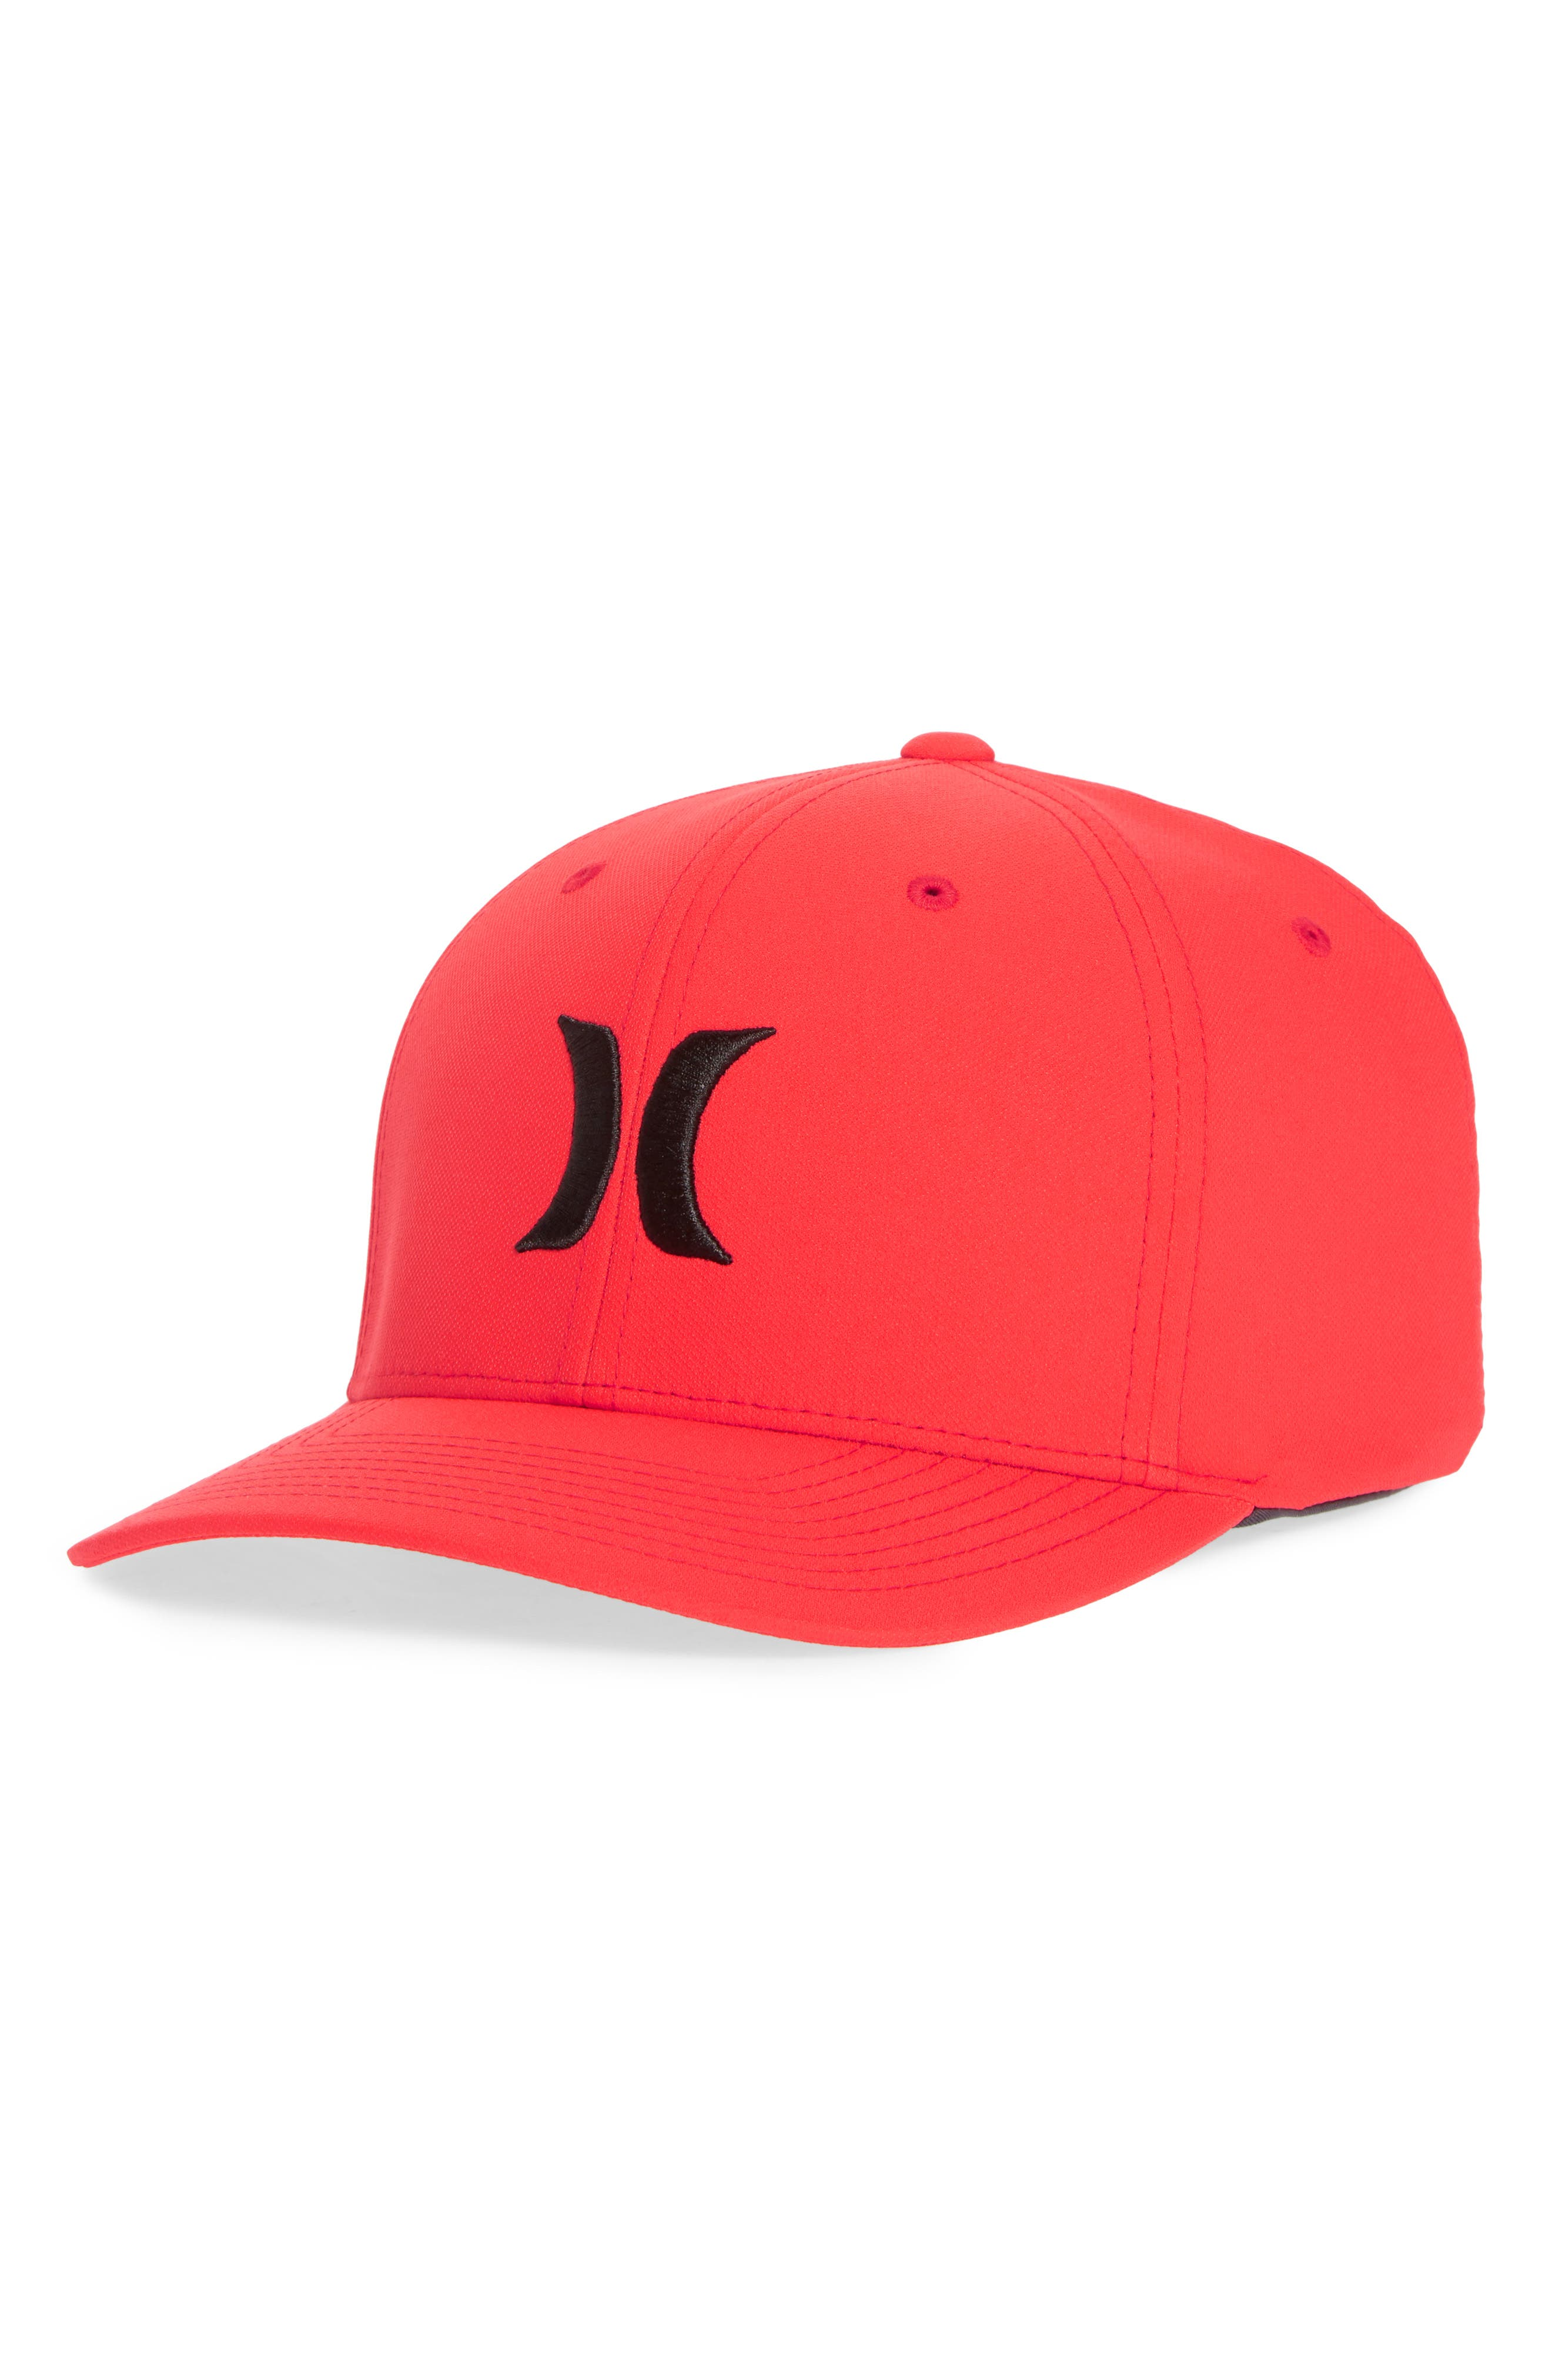 Dri-FIT One & Only Logo Cap,                             Main thumbnail 1, color,                             Speed Red / Black